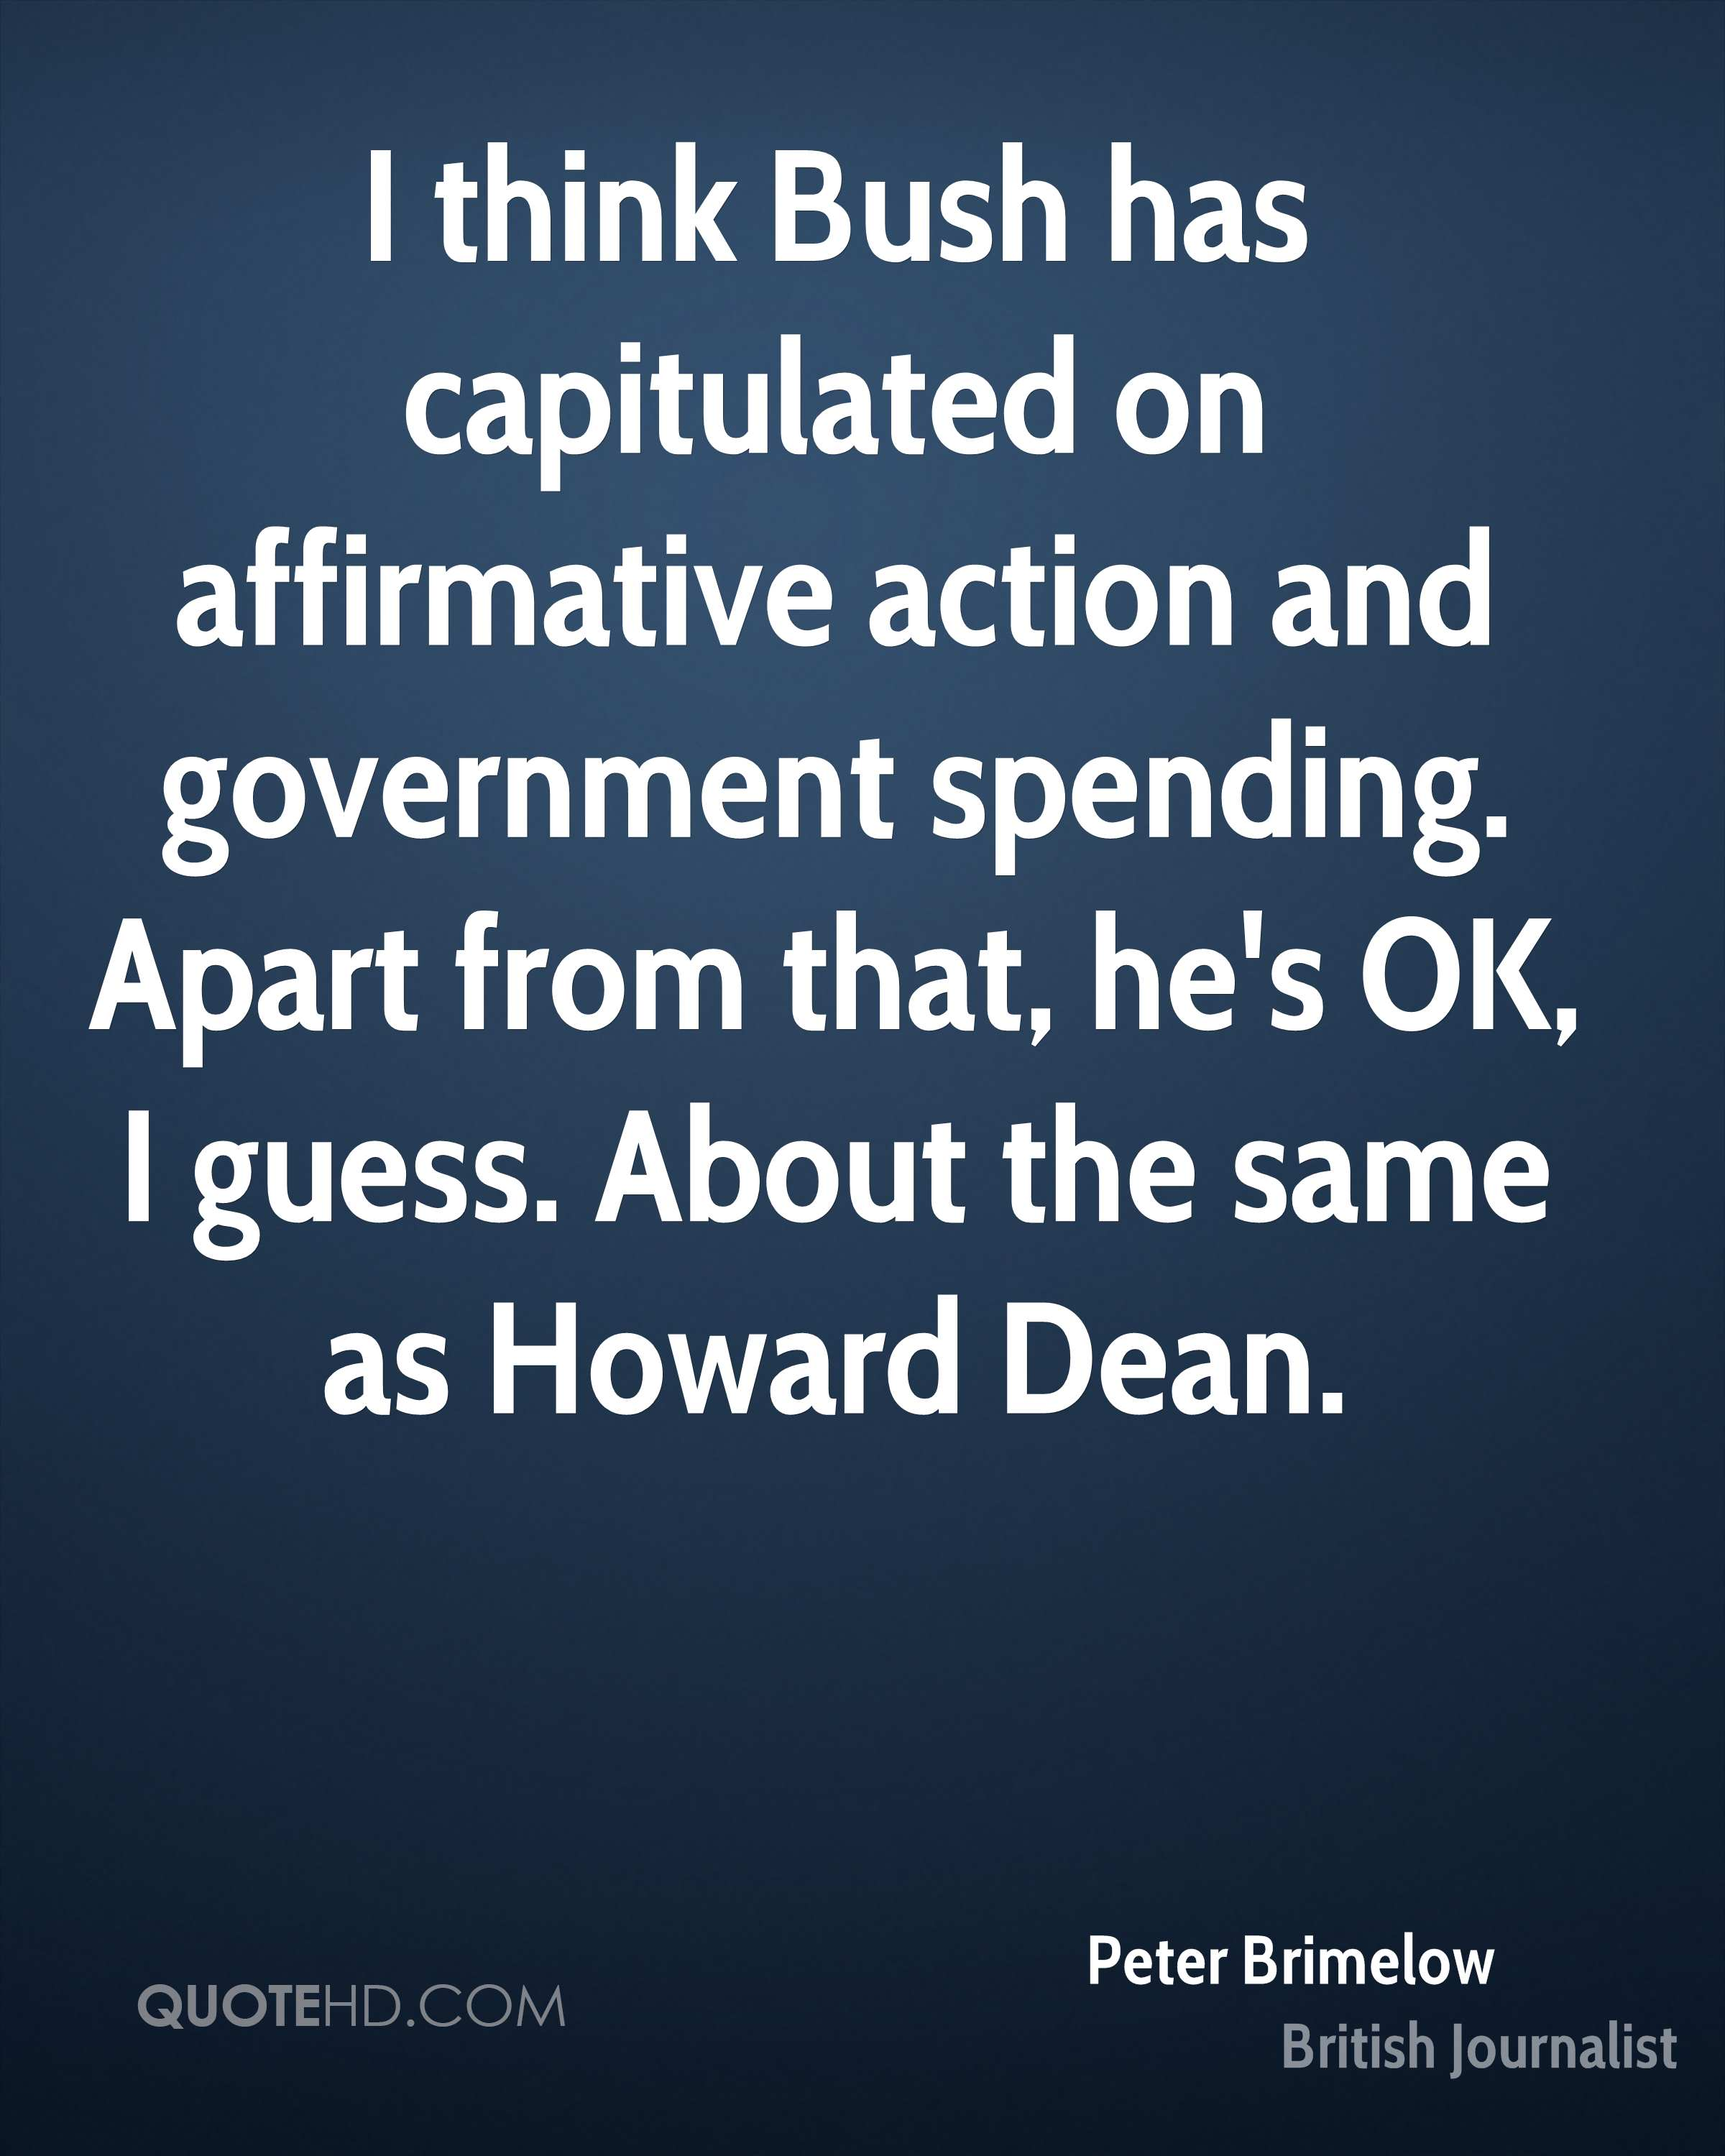 I think Bush has capitulated on affirmative action and government spending. Apart from that, he's OK, I guess. About the same as Howard Dean.